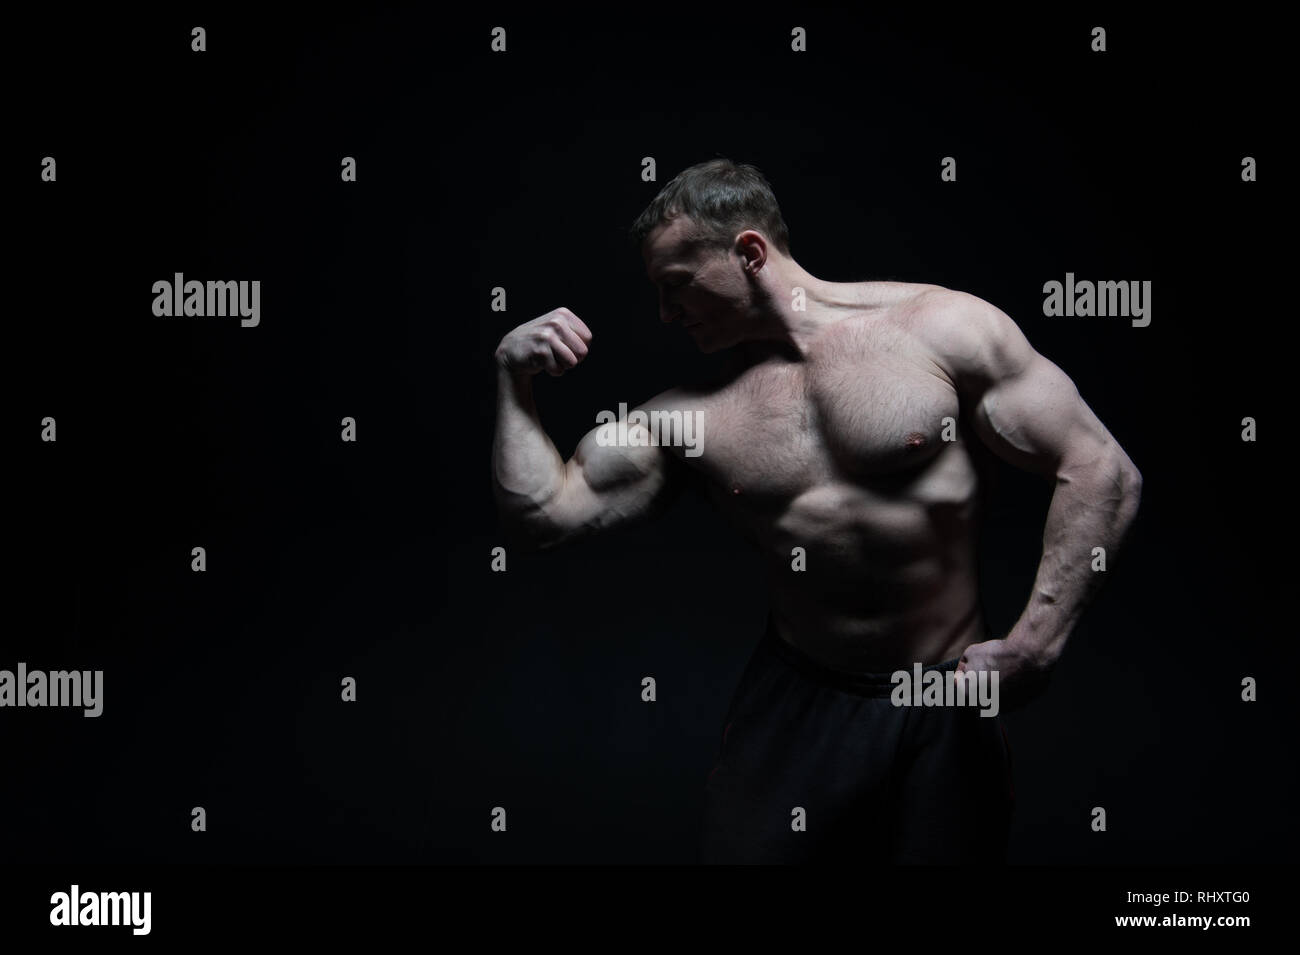 anabolic steroids. man show muscle biceps after using anabolic steroids. anabolic steroids for muscular body. anabolic steroids for bodybuilder isolated no black, copy space. Huge possibilities Stock Photo